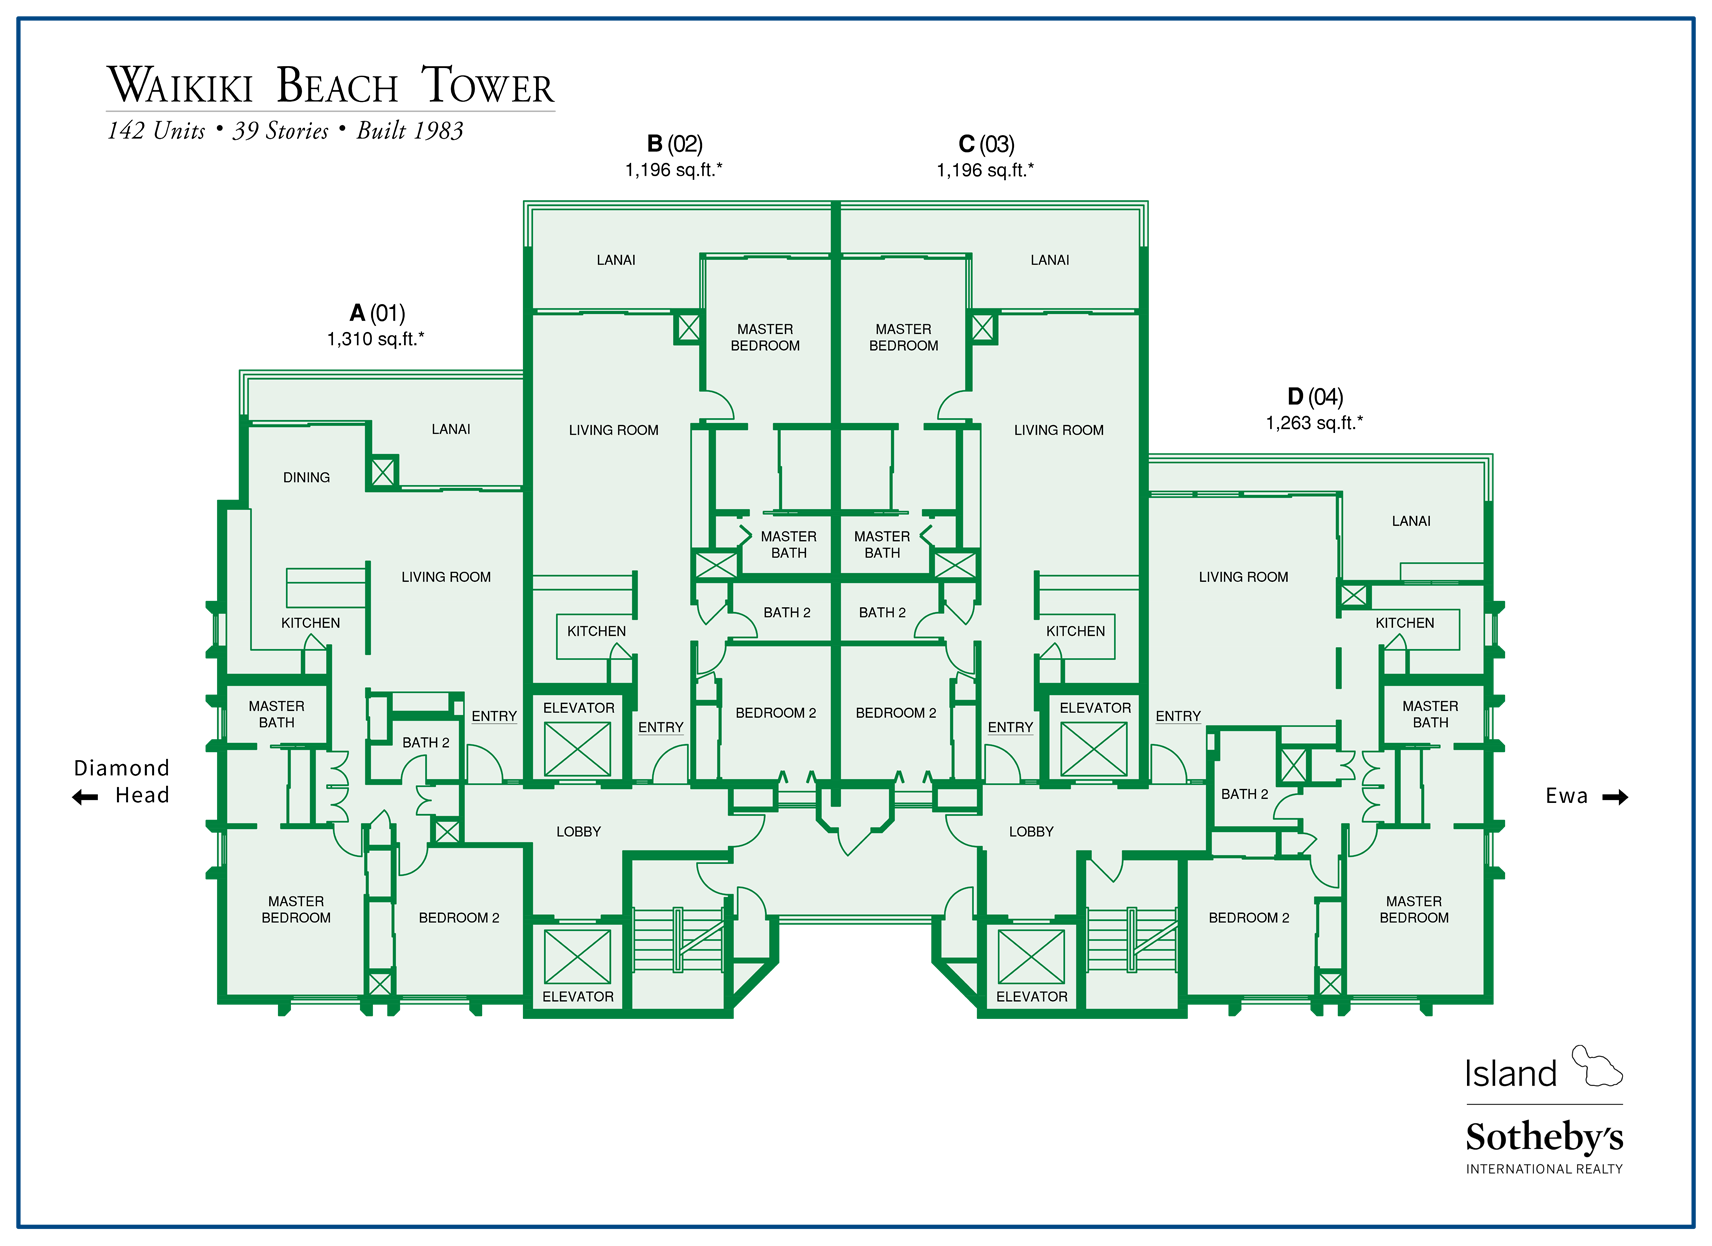 Waikiki Beach Tower Map